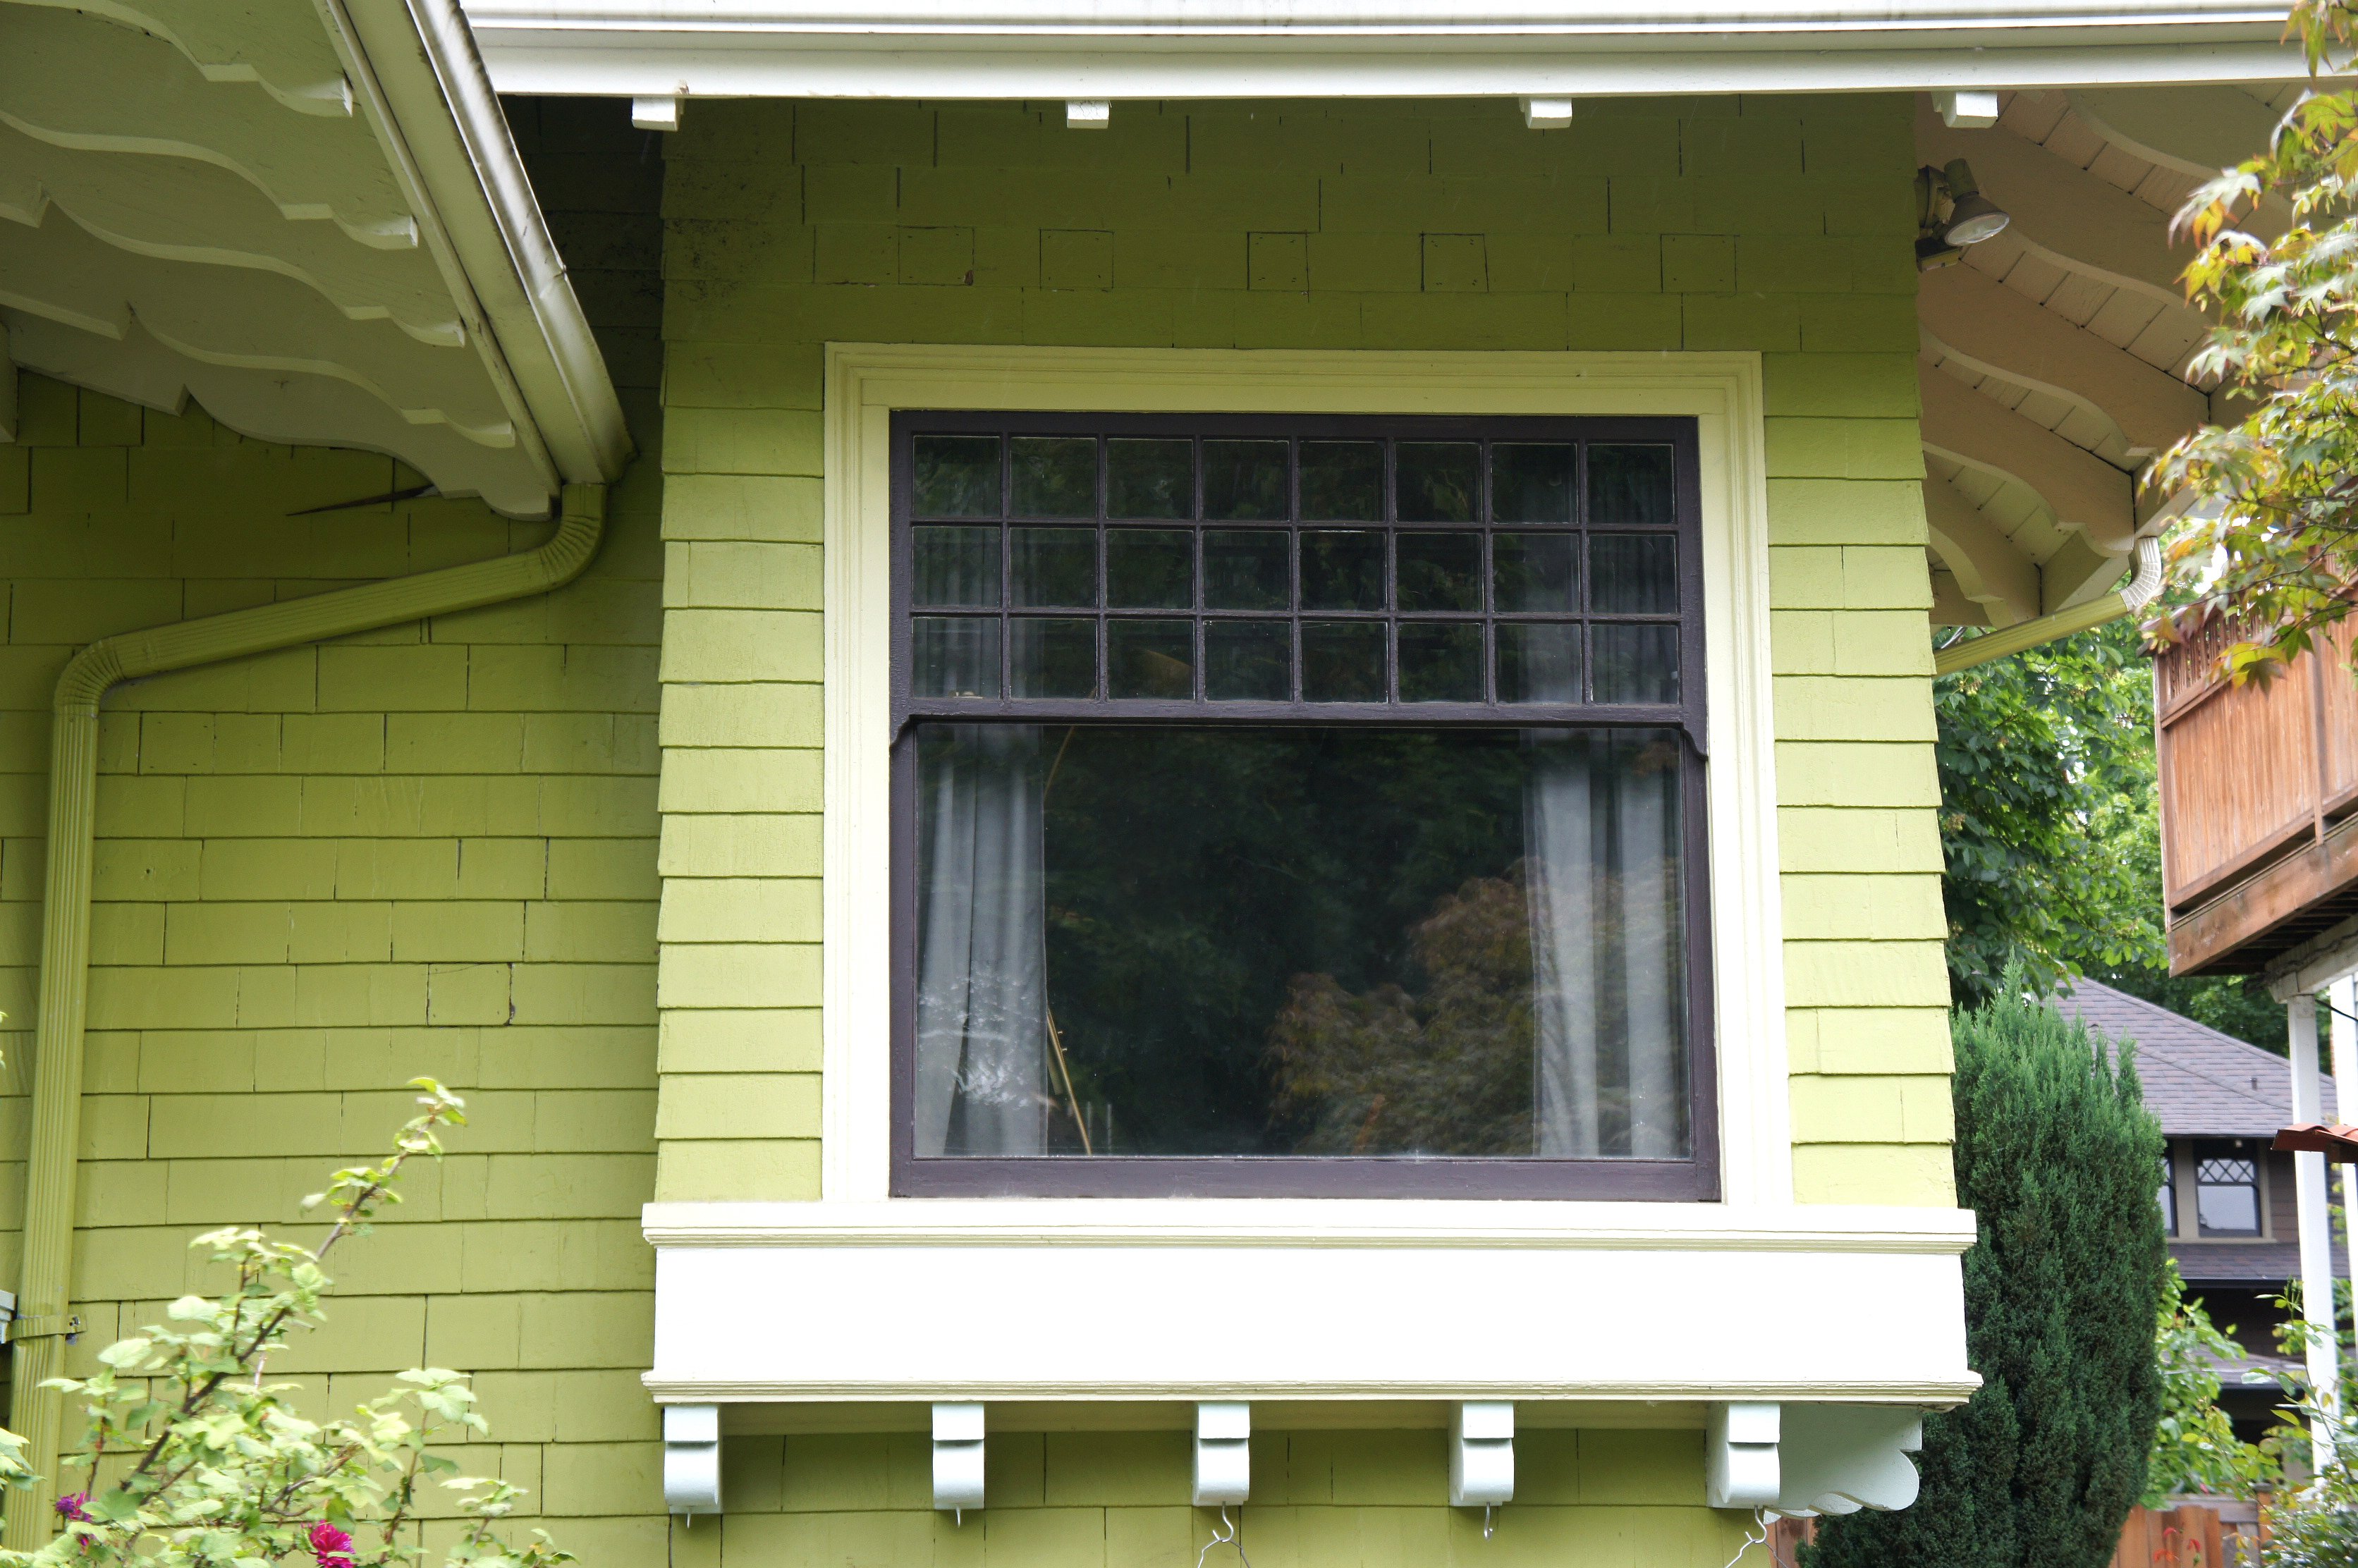 Insulating portland craftsman bungalow windows indow for Window design new style